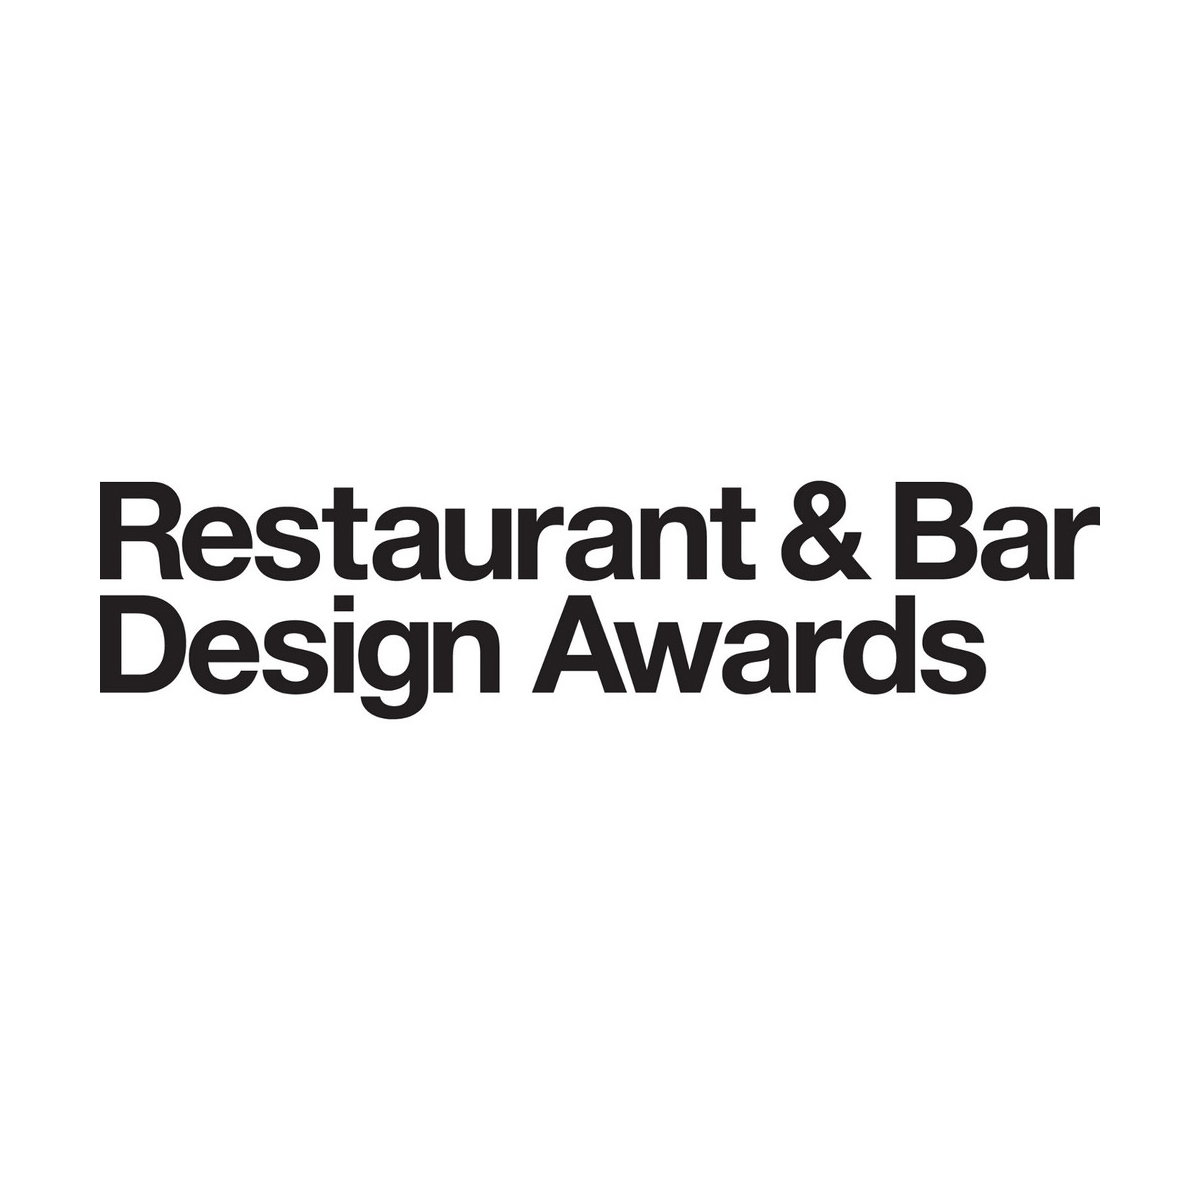 2021 Restaurant and Bar Design Awards Open for Entries